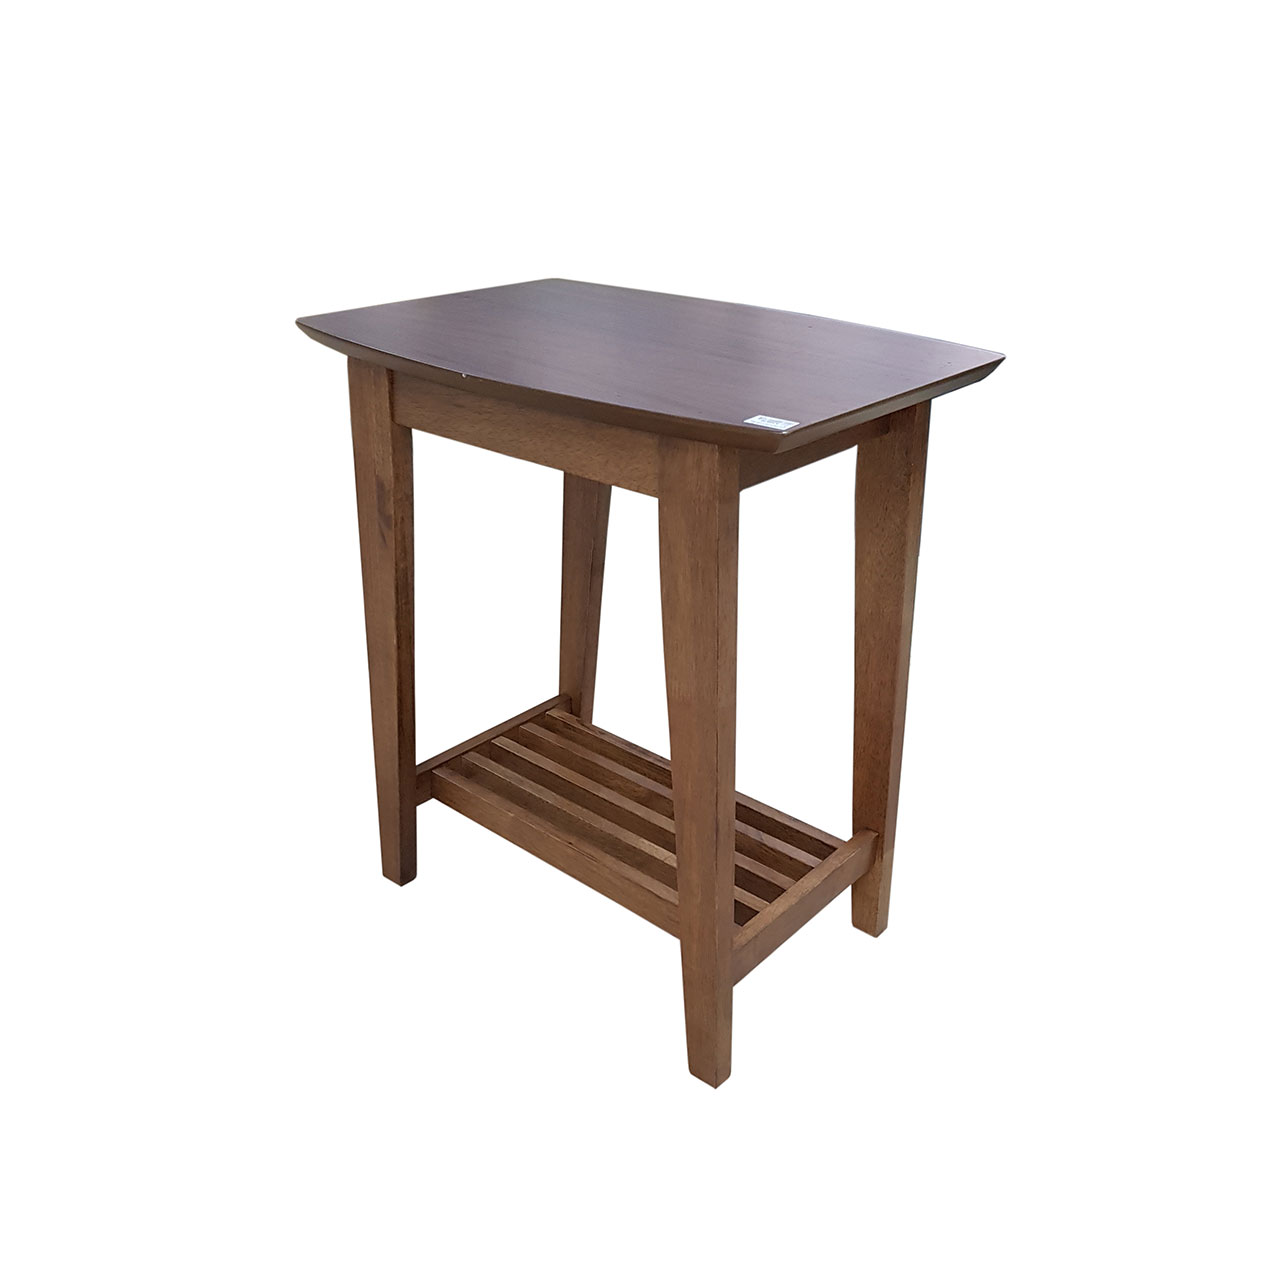 Tadeas Side Table Furniture Store Manila Philippines  : ORLANDO SIDE 2 from www.urbanconcepts.ph size 1280 x 1280 jpeg 69kB